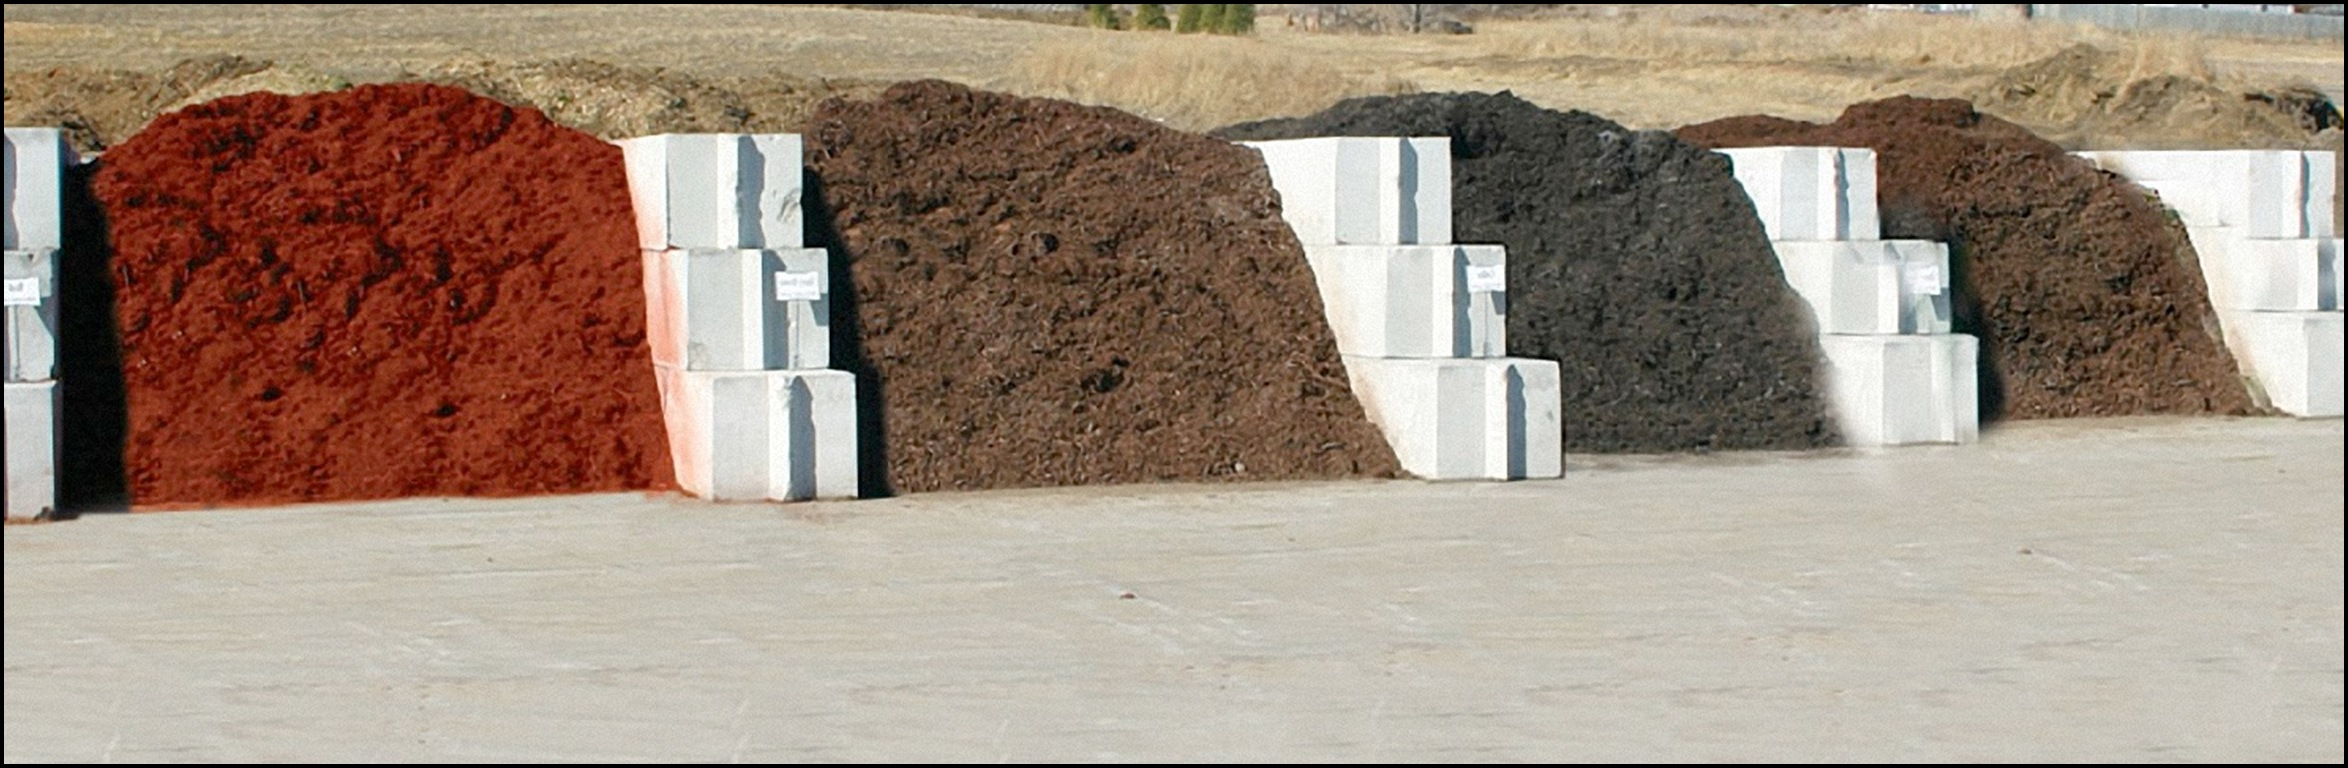 Buy Mulch In Bulk